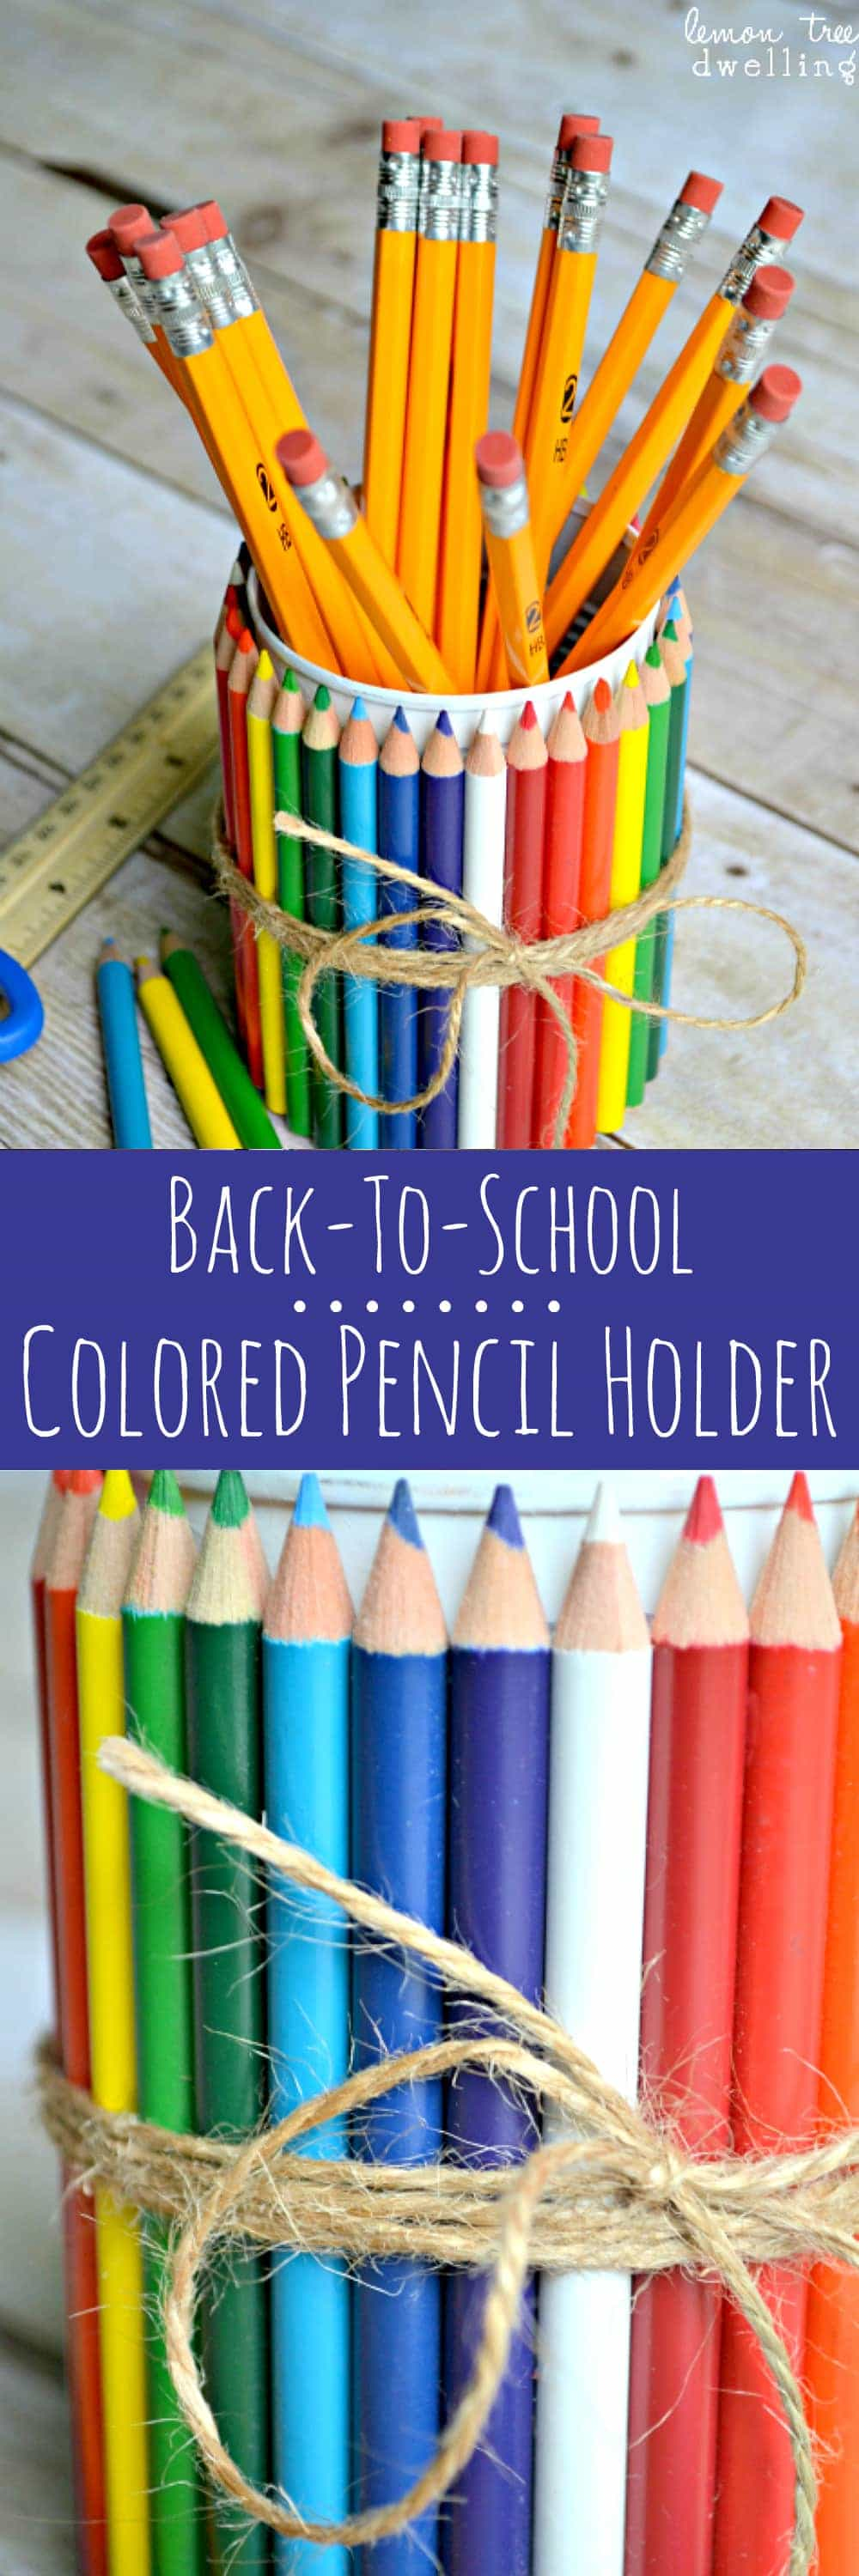 All you need is a tin can, some spray paint, and a couple boxes of colored pencils to make this adorable {Colored} Pencil Holder...the perfect back-to-school Teacher Gift!